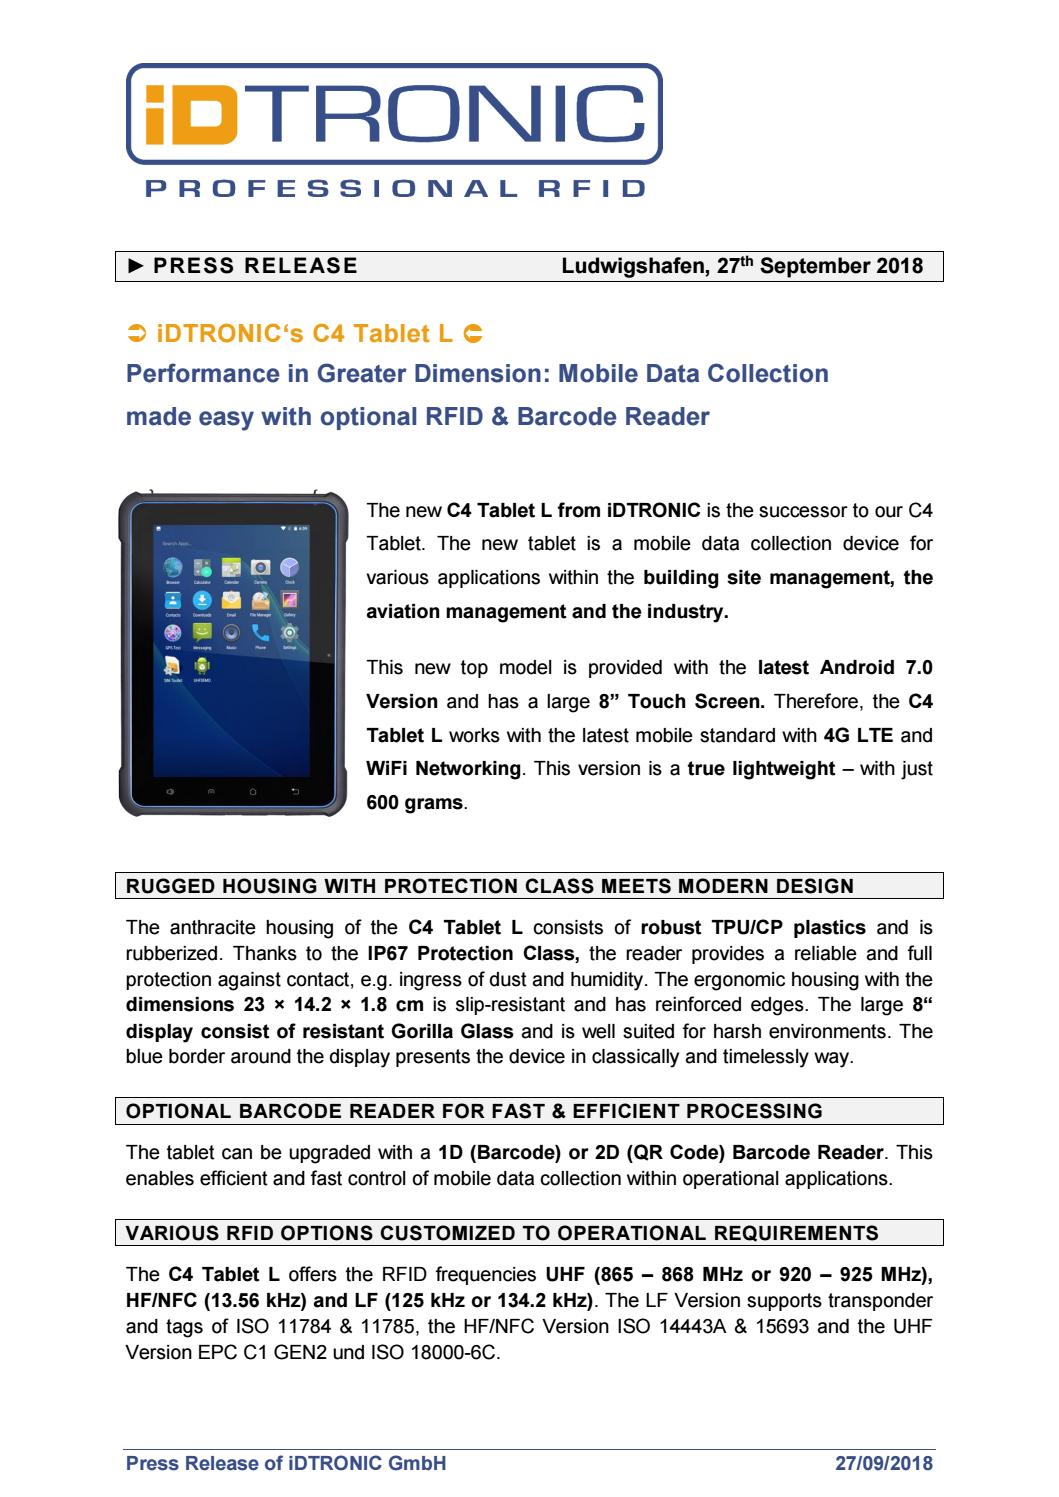 Press Release: iDTRONIC's C4 Tablet L - Performance in